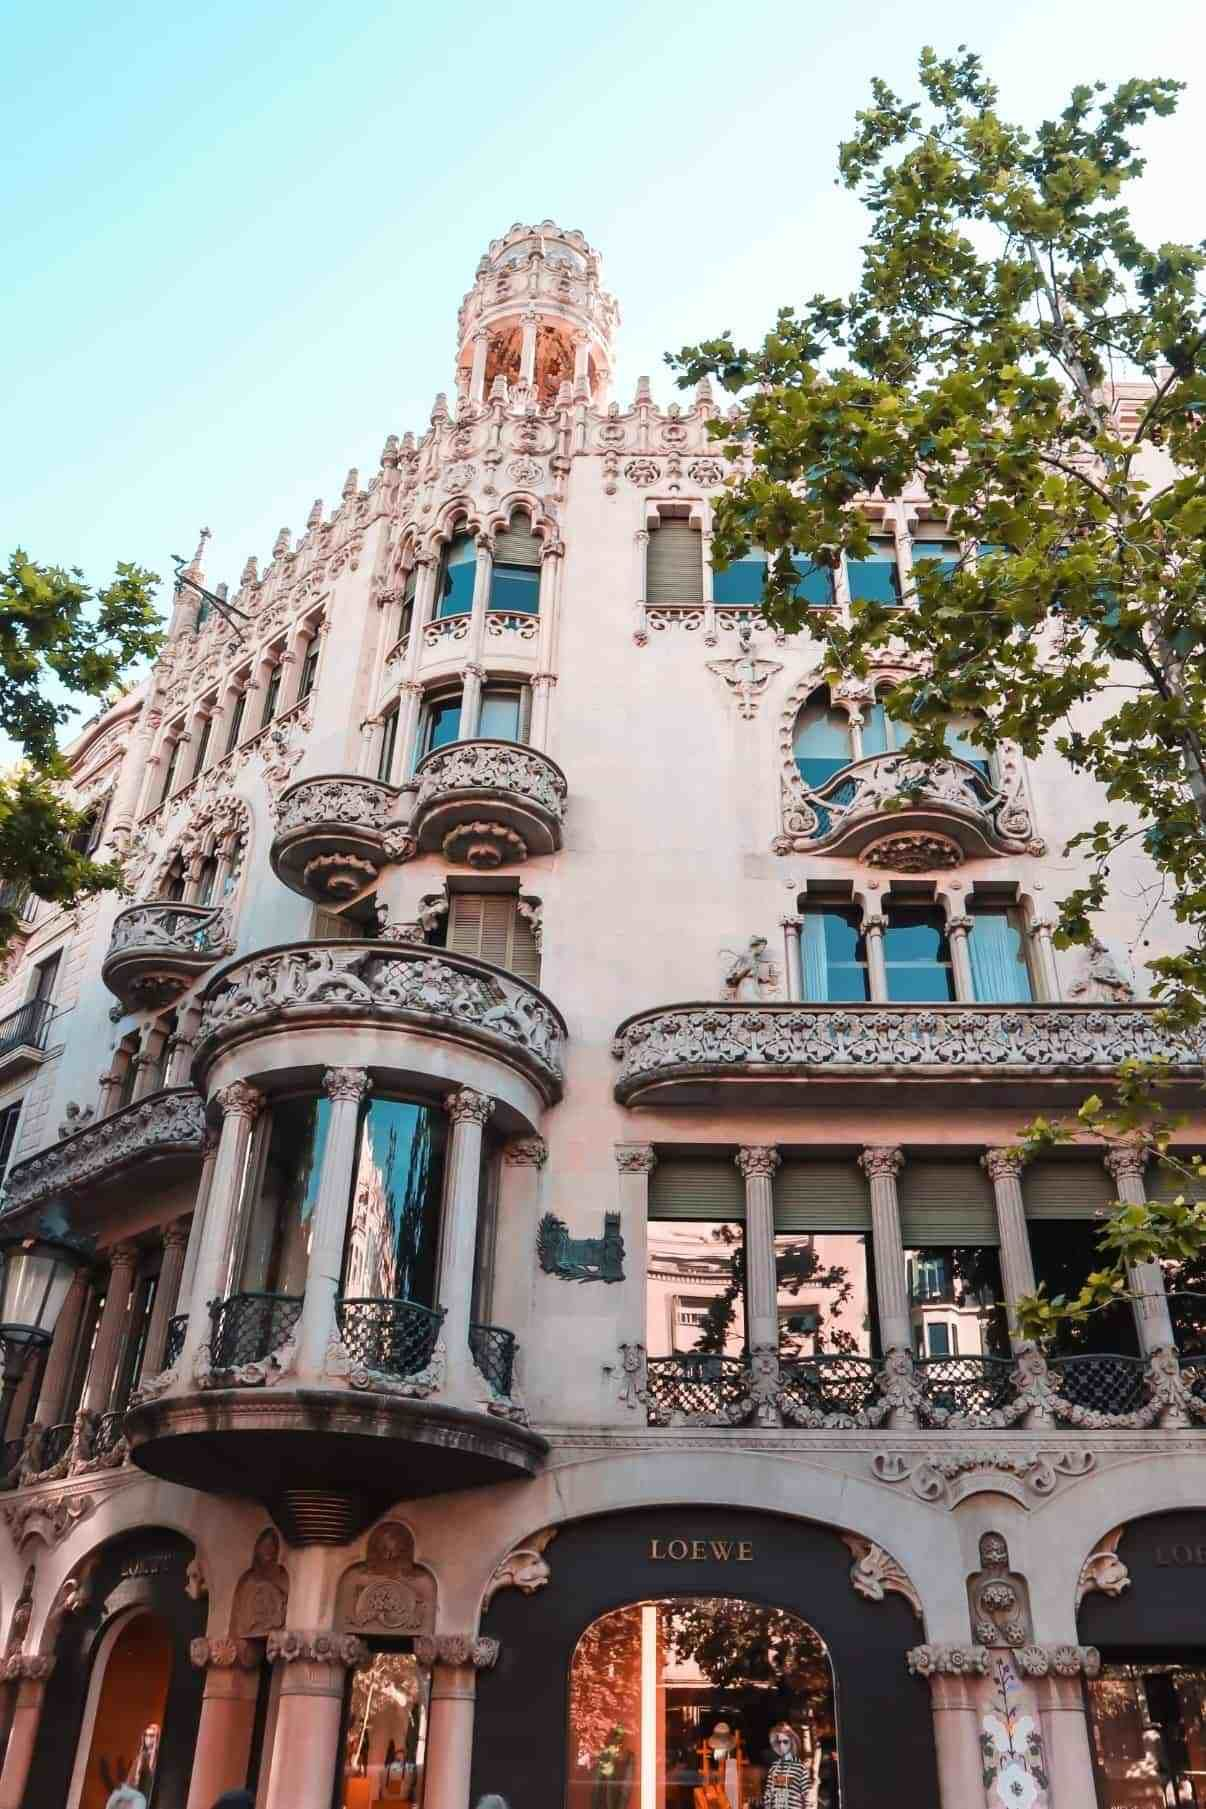 barcelona | spain | catalonia | things to do in barcelona | barcelona in 2 days | barcelona itinerary | best things to do in barcelona | what to visit in barcelona | barcelona tourist attractions | barcelona activities | barcelona bucket list | #barcelona #spain #barcelonaitinerary